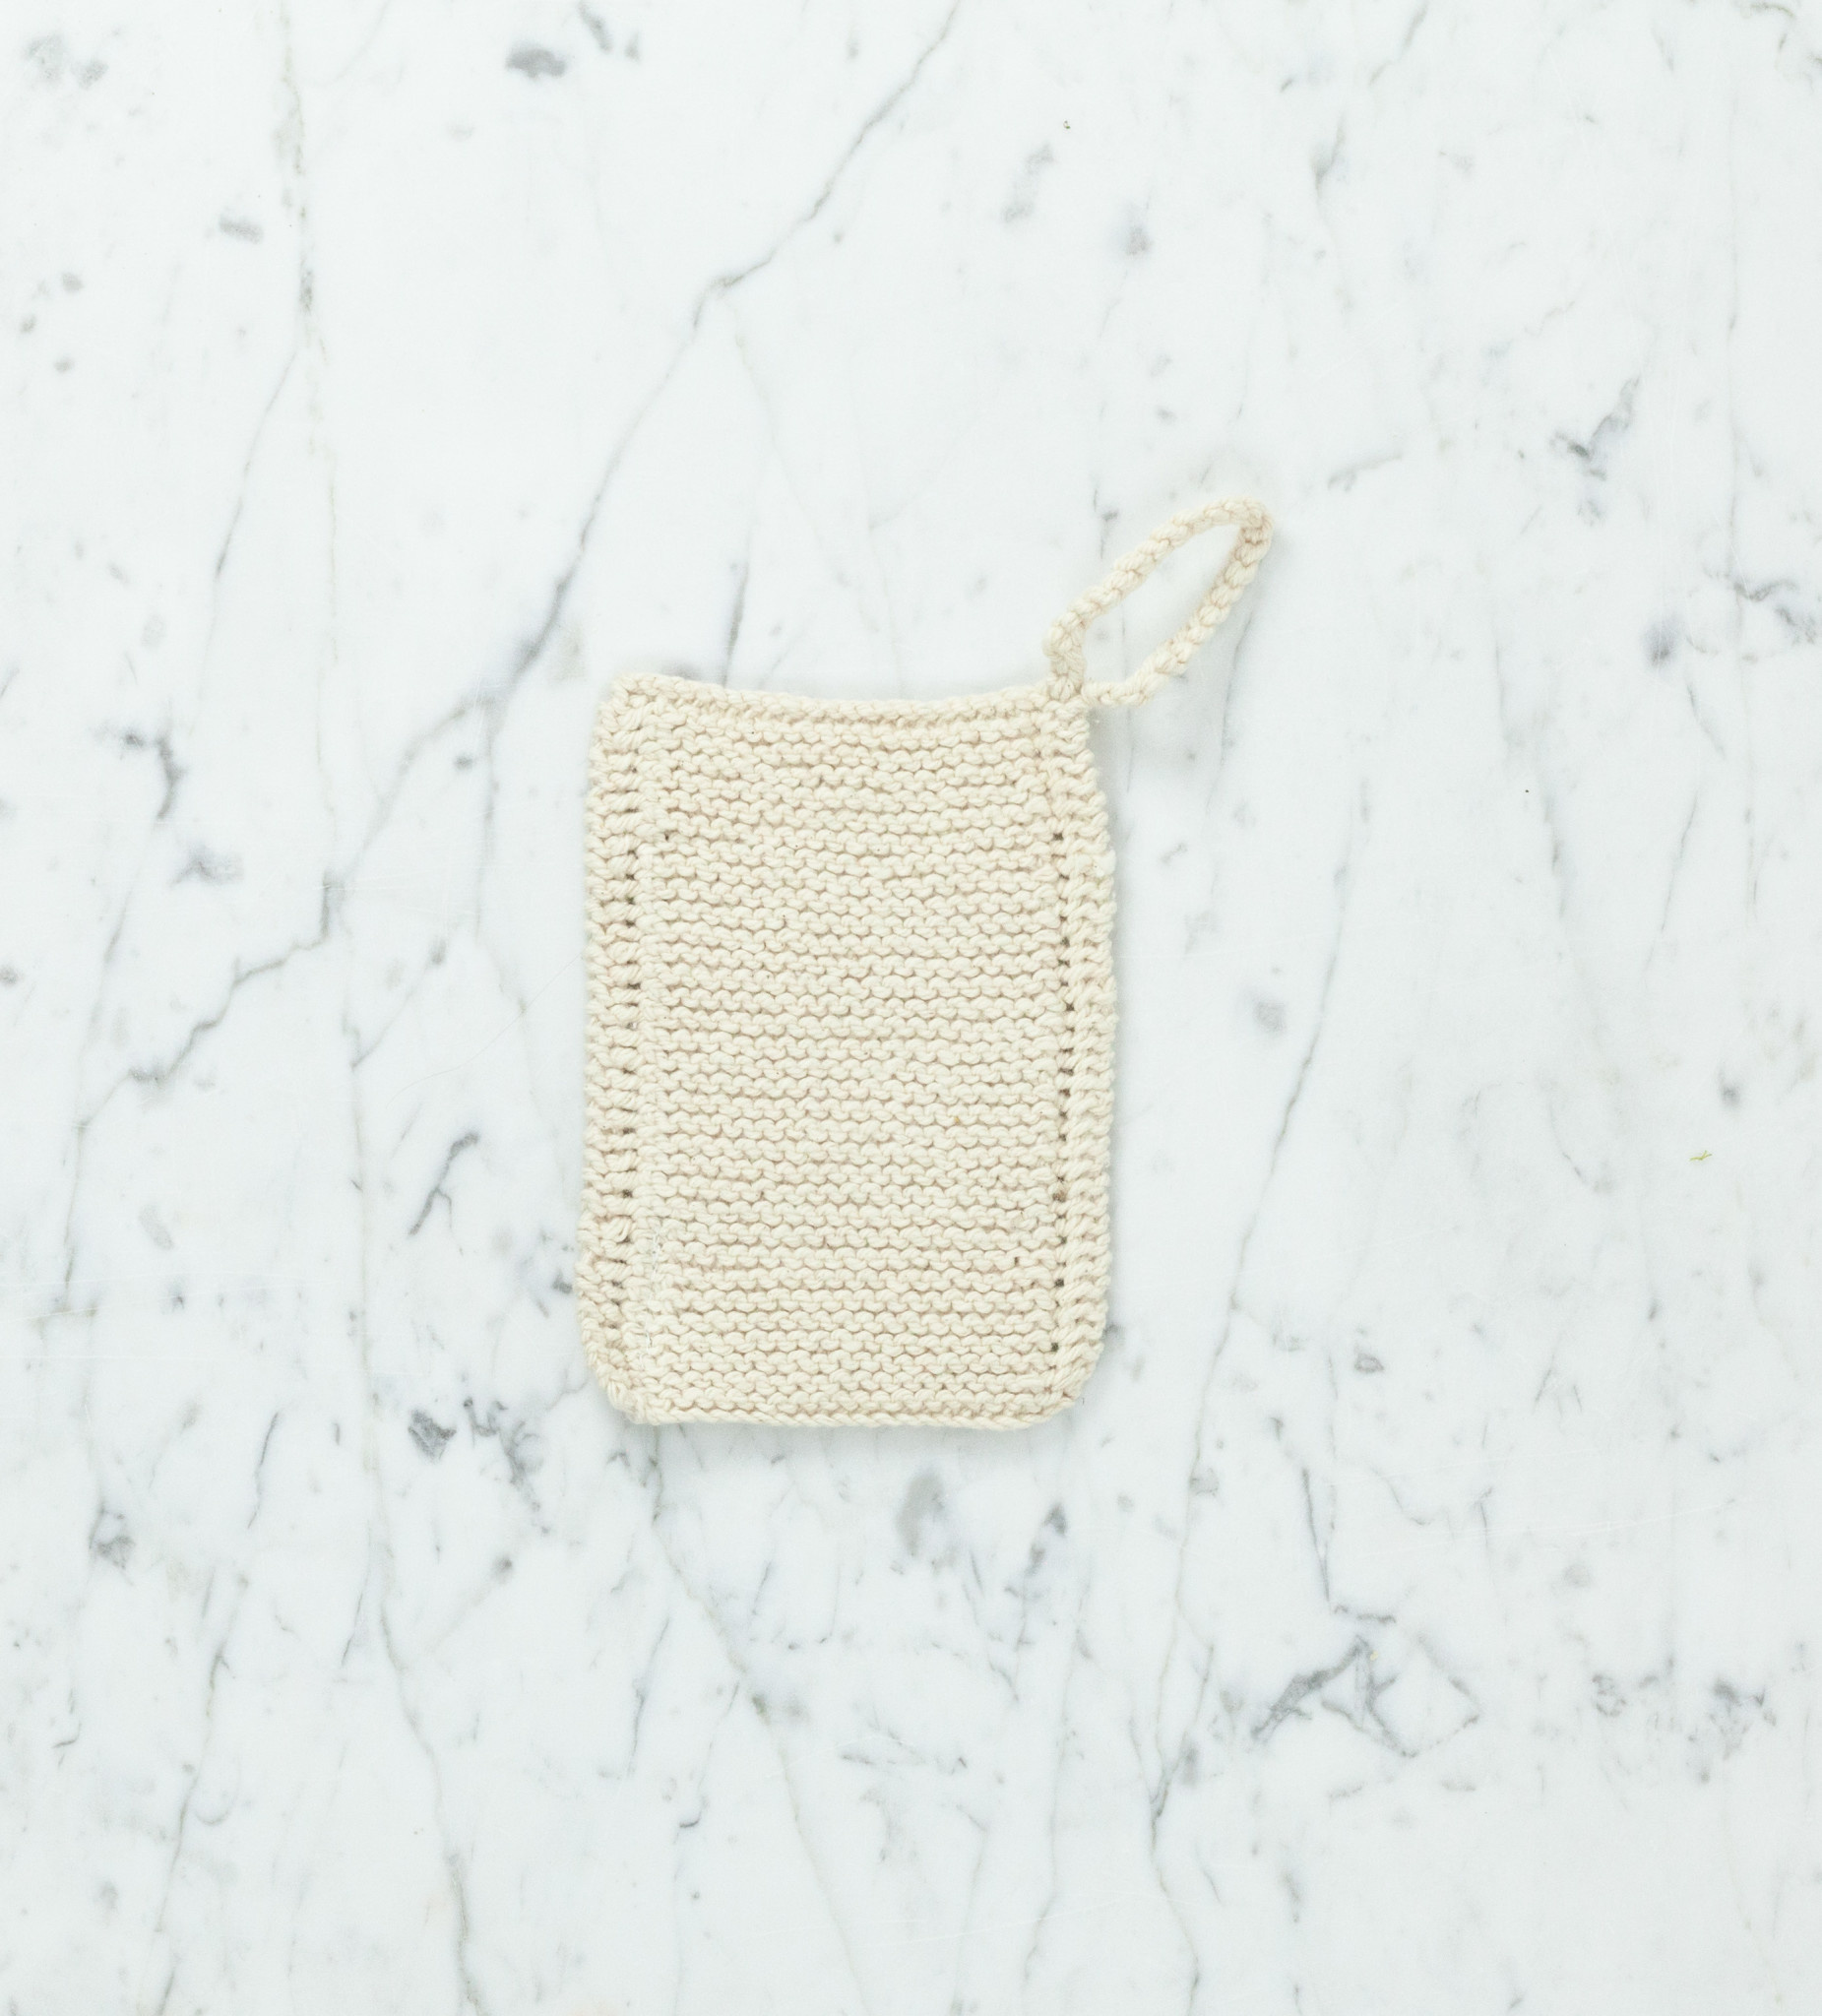 Toockies Hand Knit Organic Scrubbing Pad with Loop - Individual